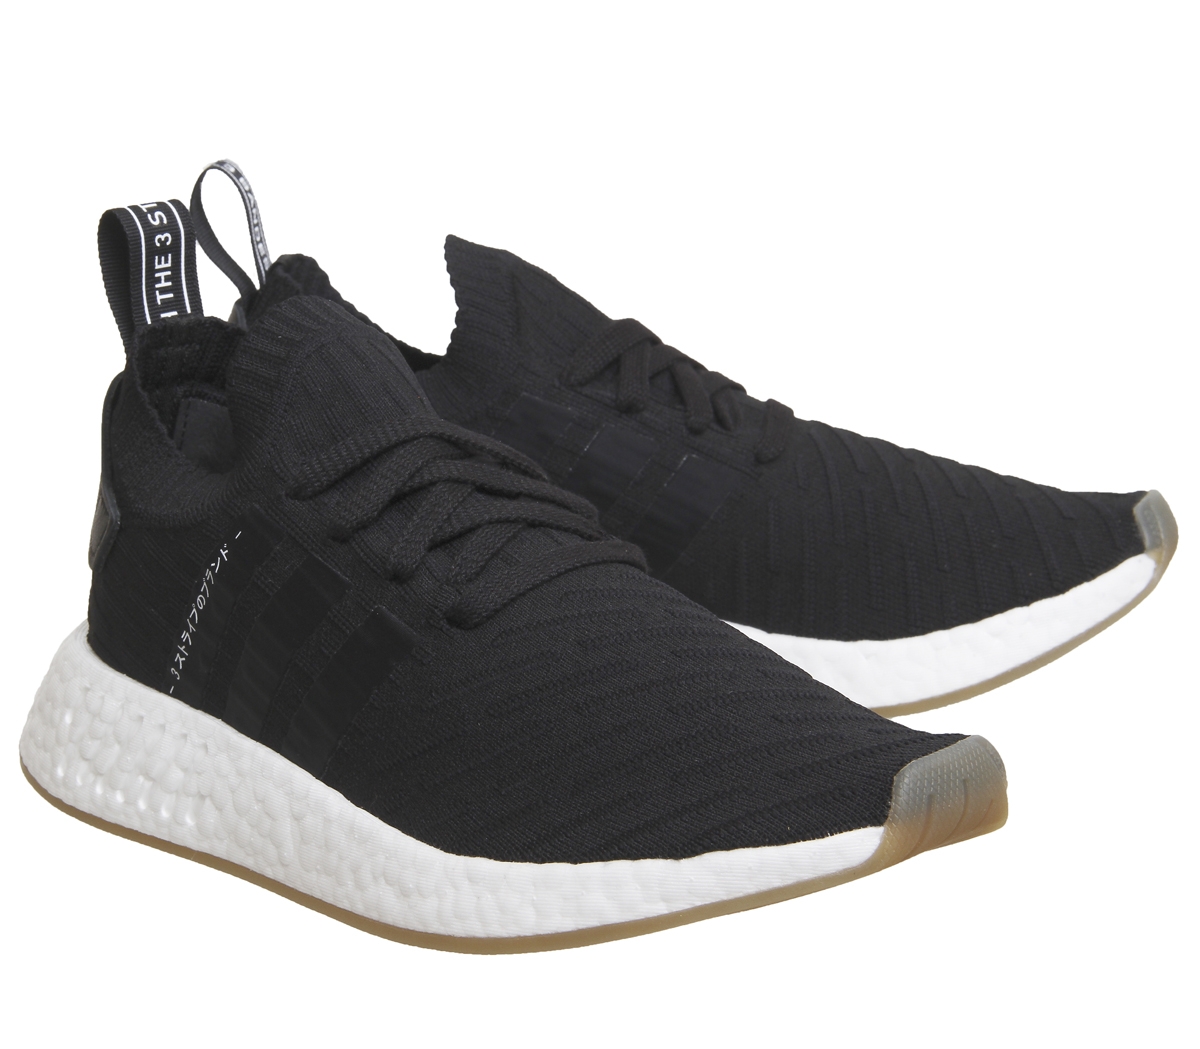 4232e5fe97e21 Mens Adidas Nmd R2 Pk Trainers Black White Trainers Shoes